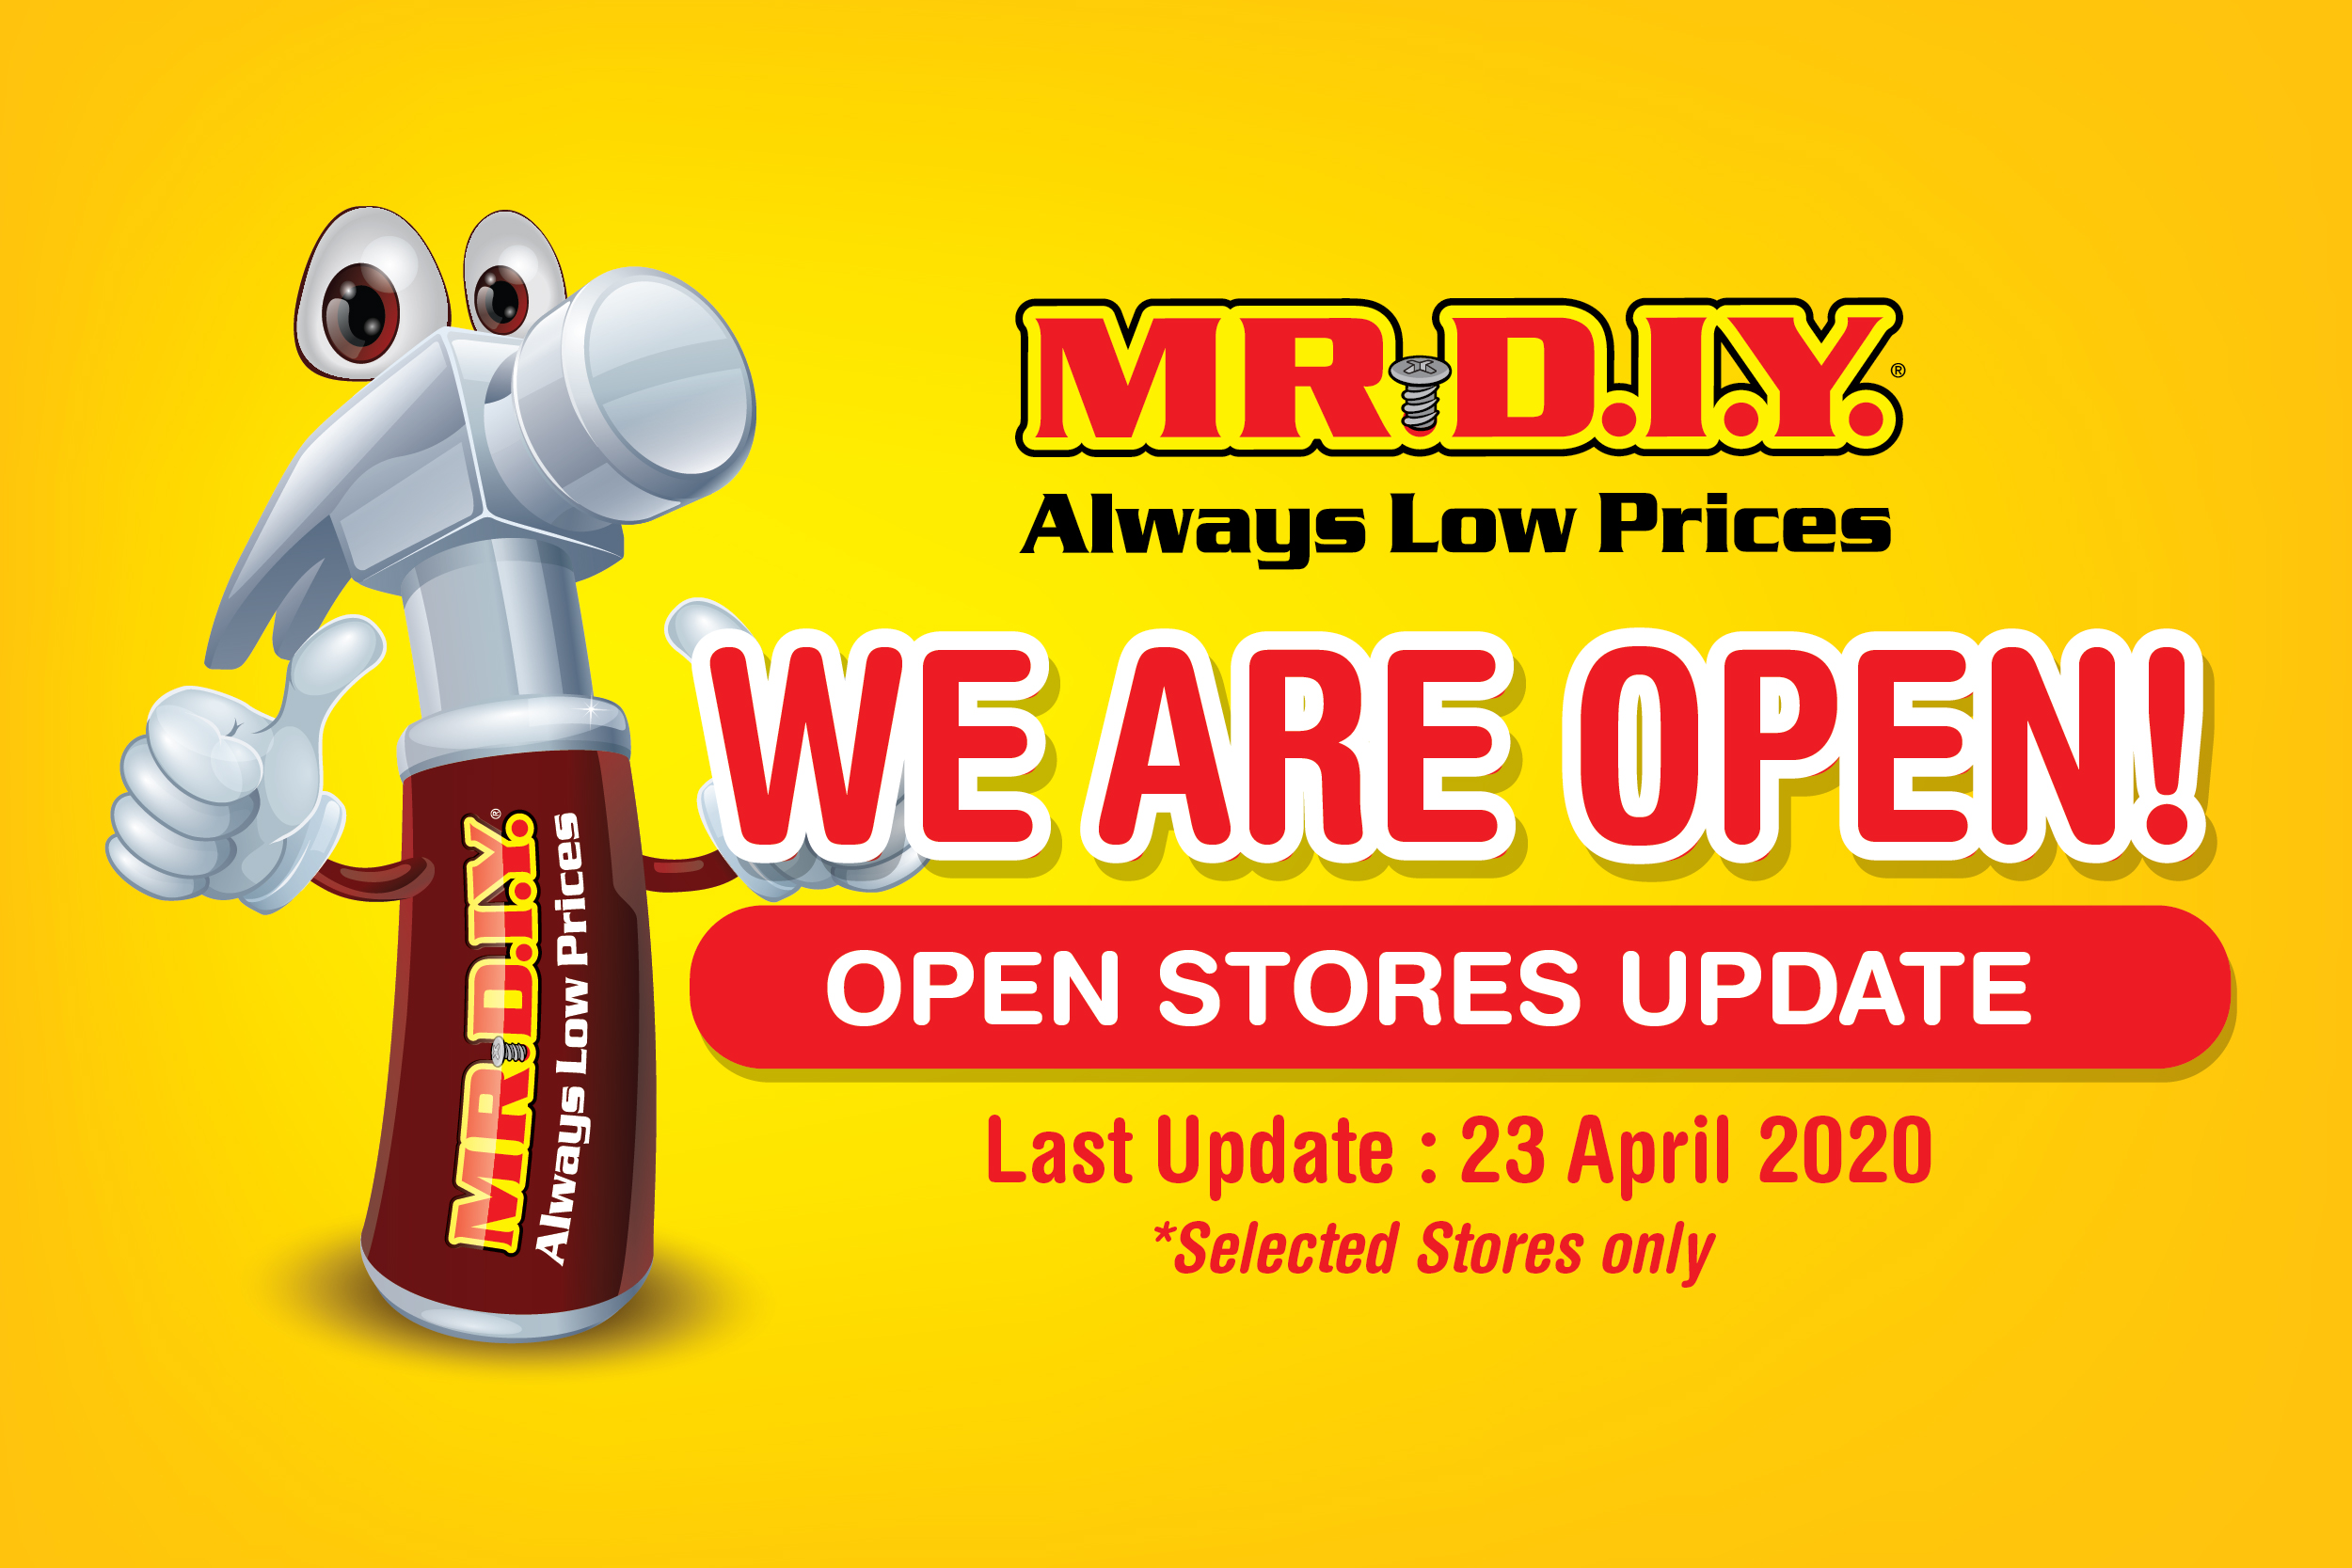 MR DIY Stores Are Open During MCO